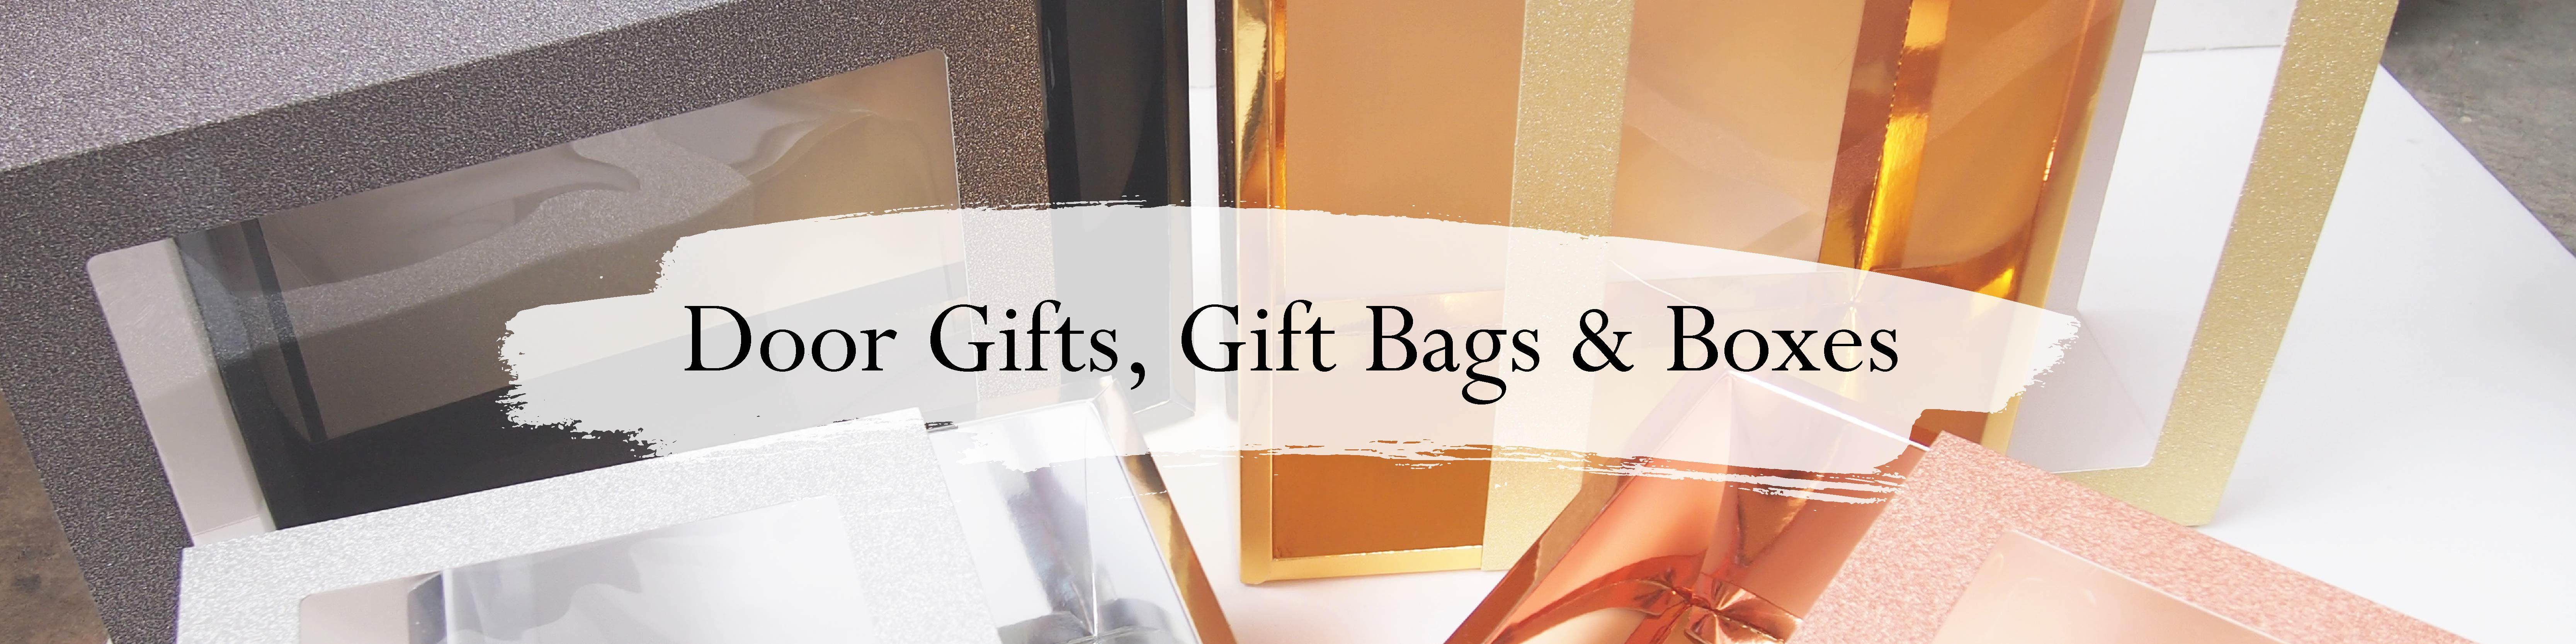 Door Gifts ,Gift Bags & Boxes